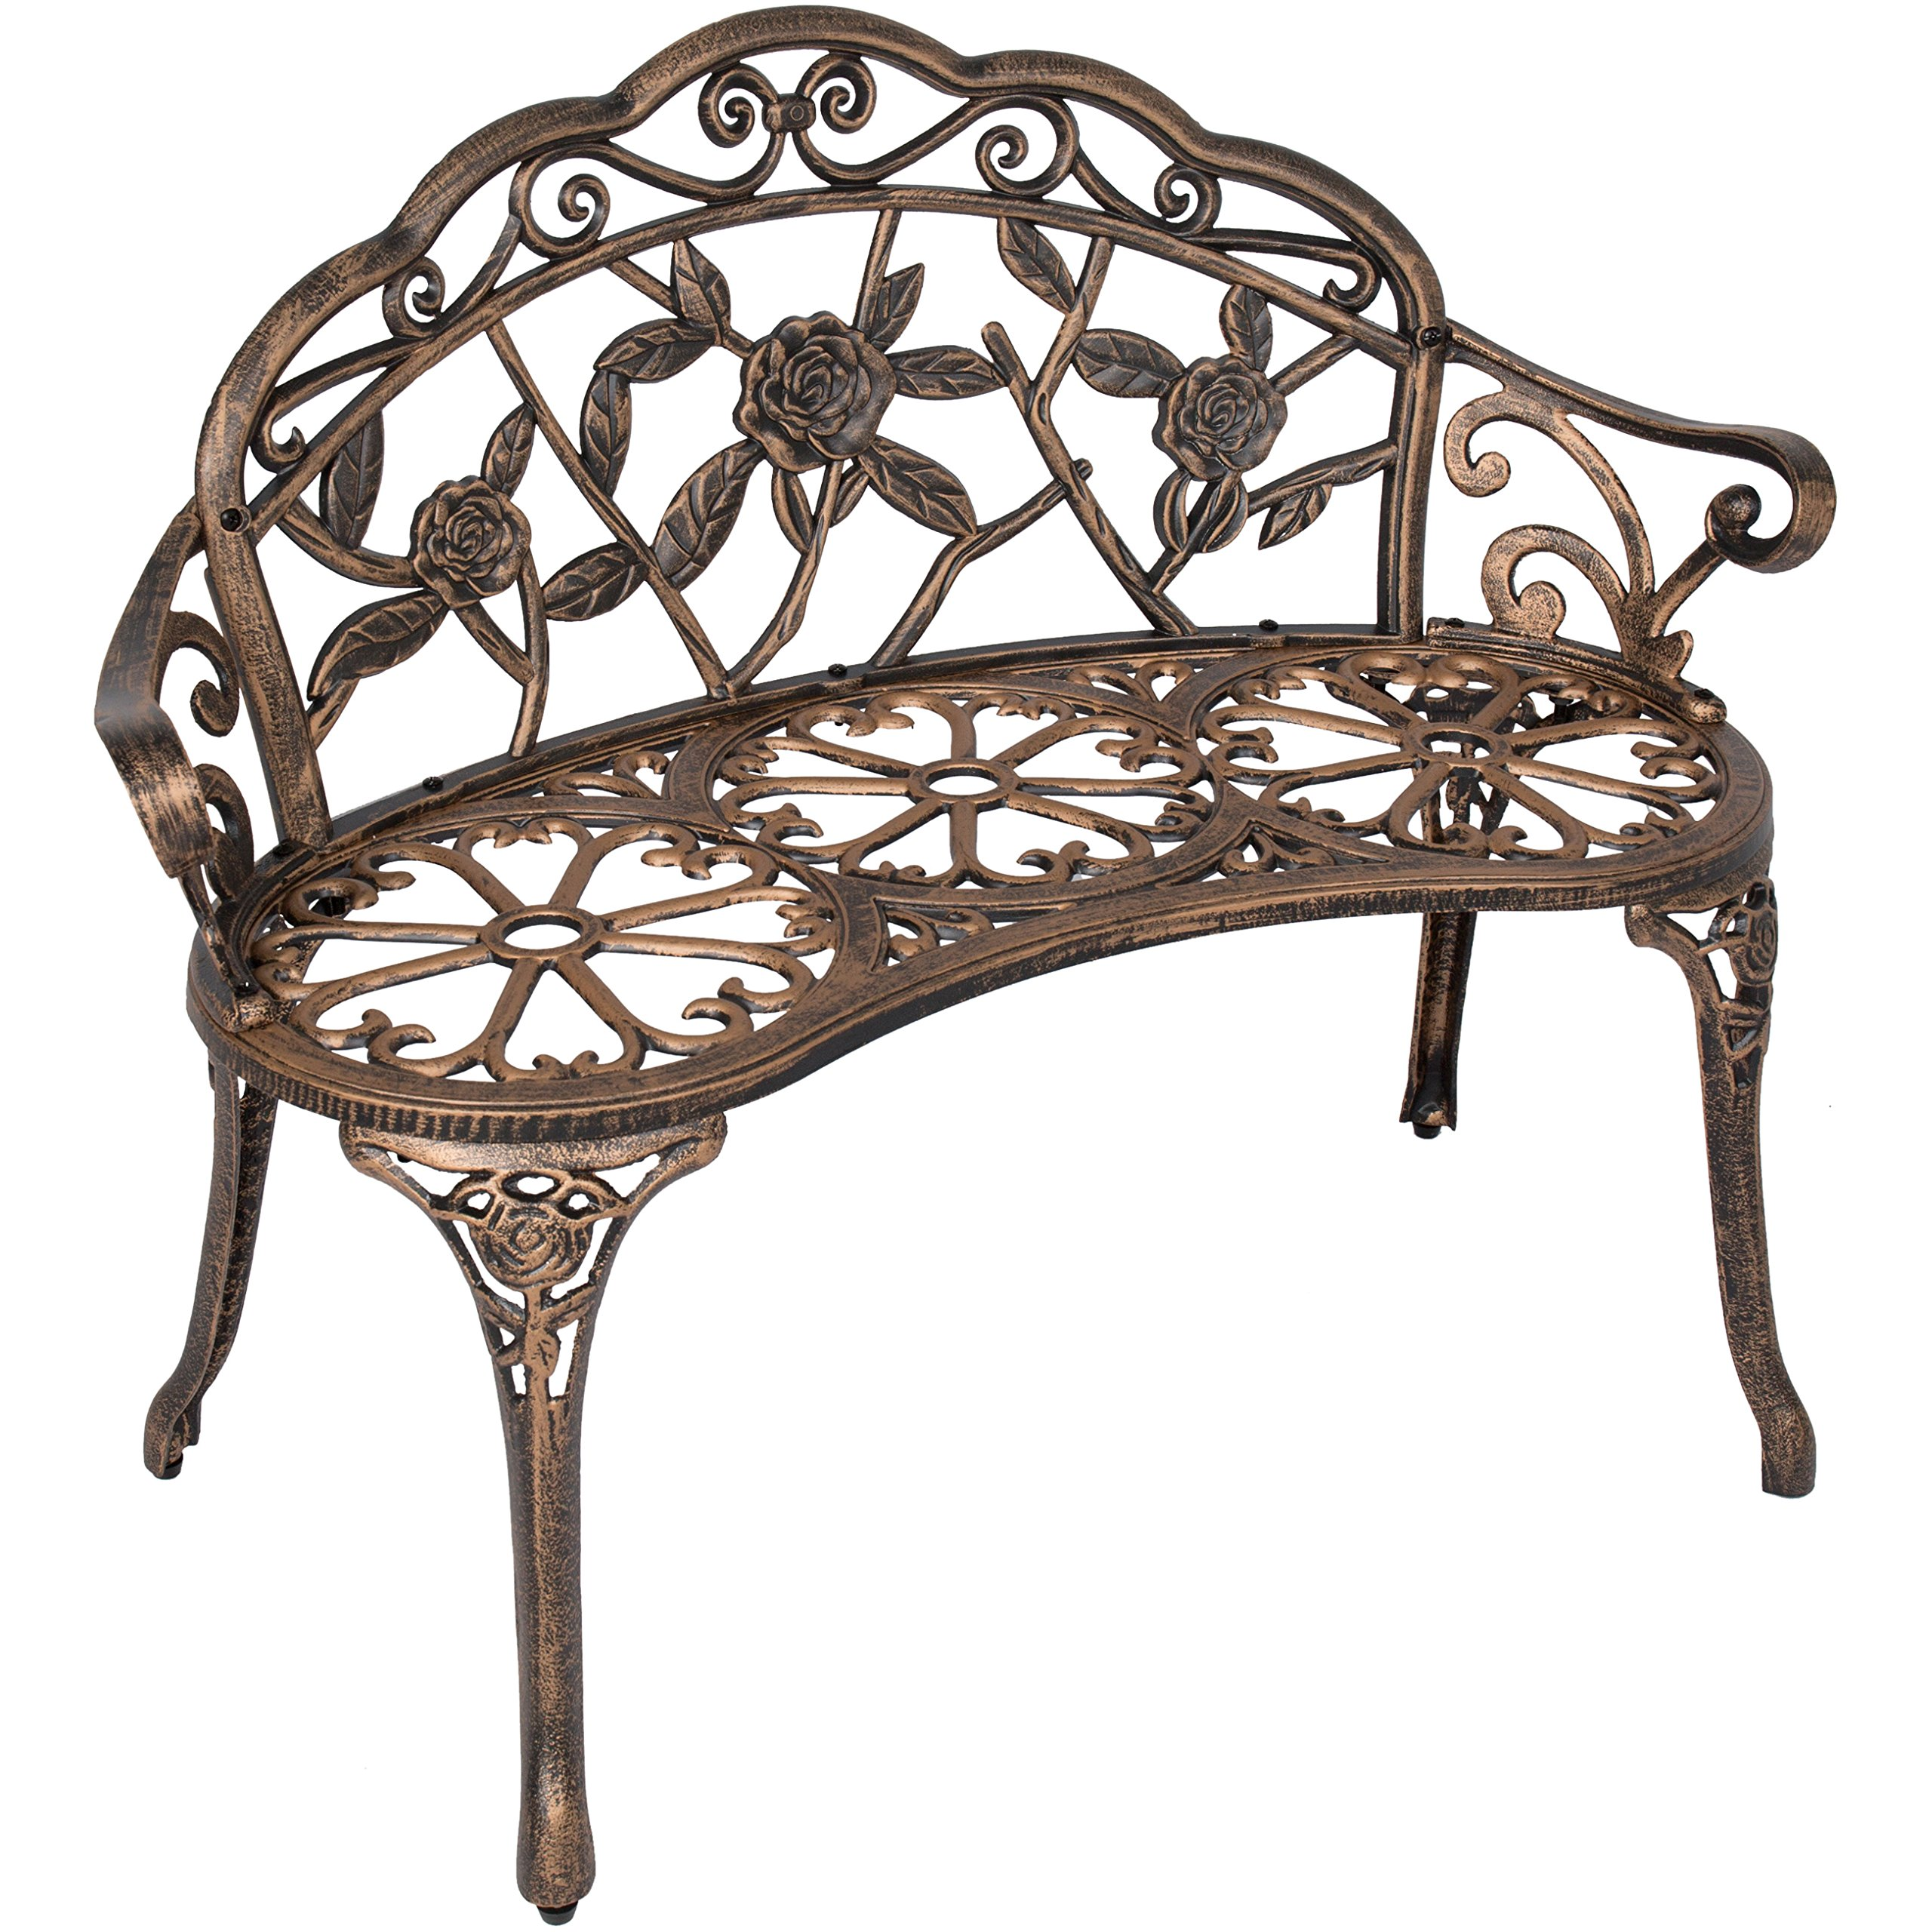 Best Choice Products 39in Outdoor Floral Rose Accented Metal Garden Patio Park Bench w/Antique Finish - Bronze